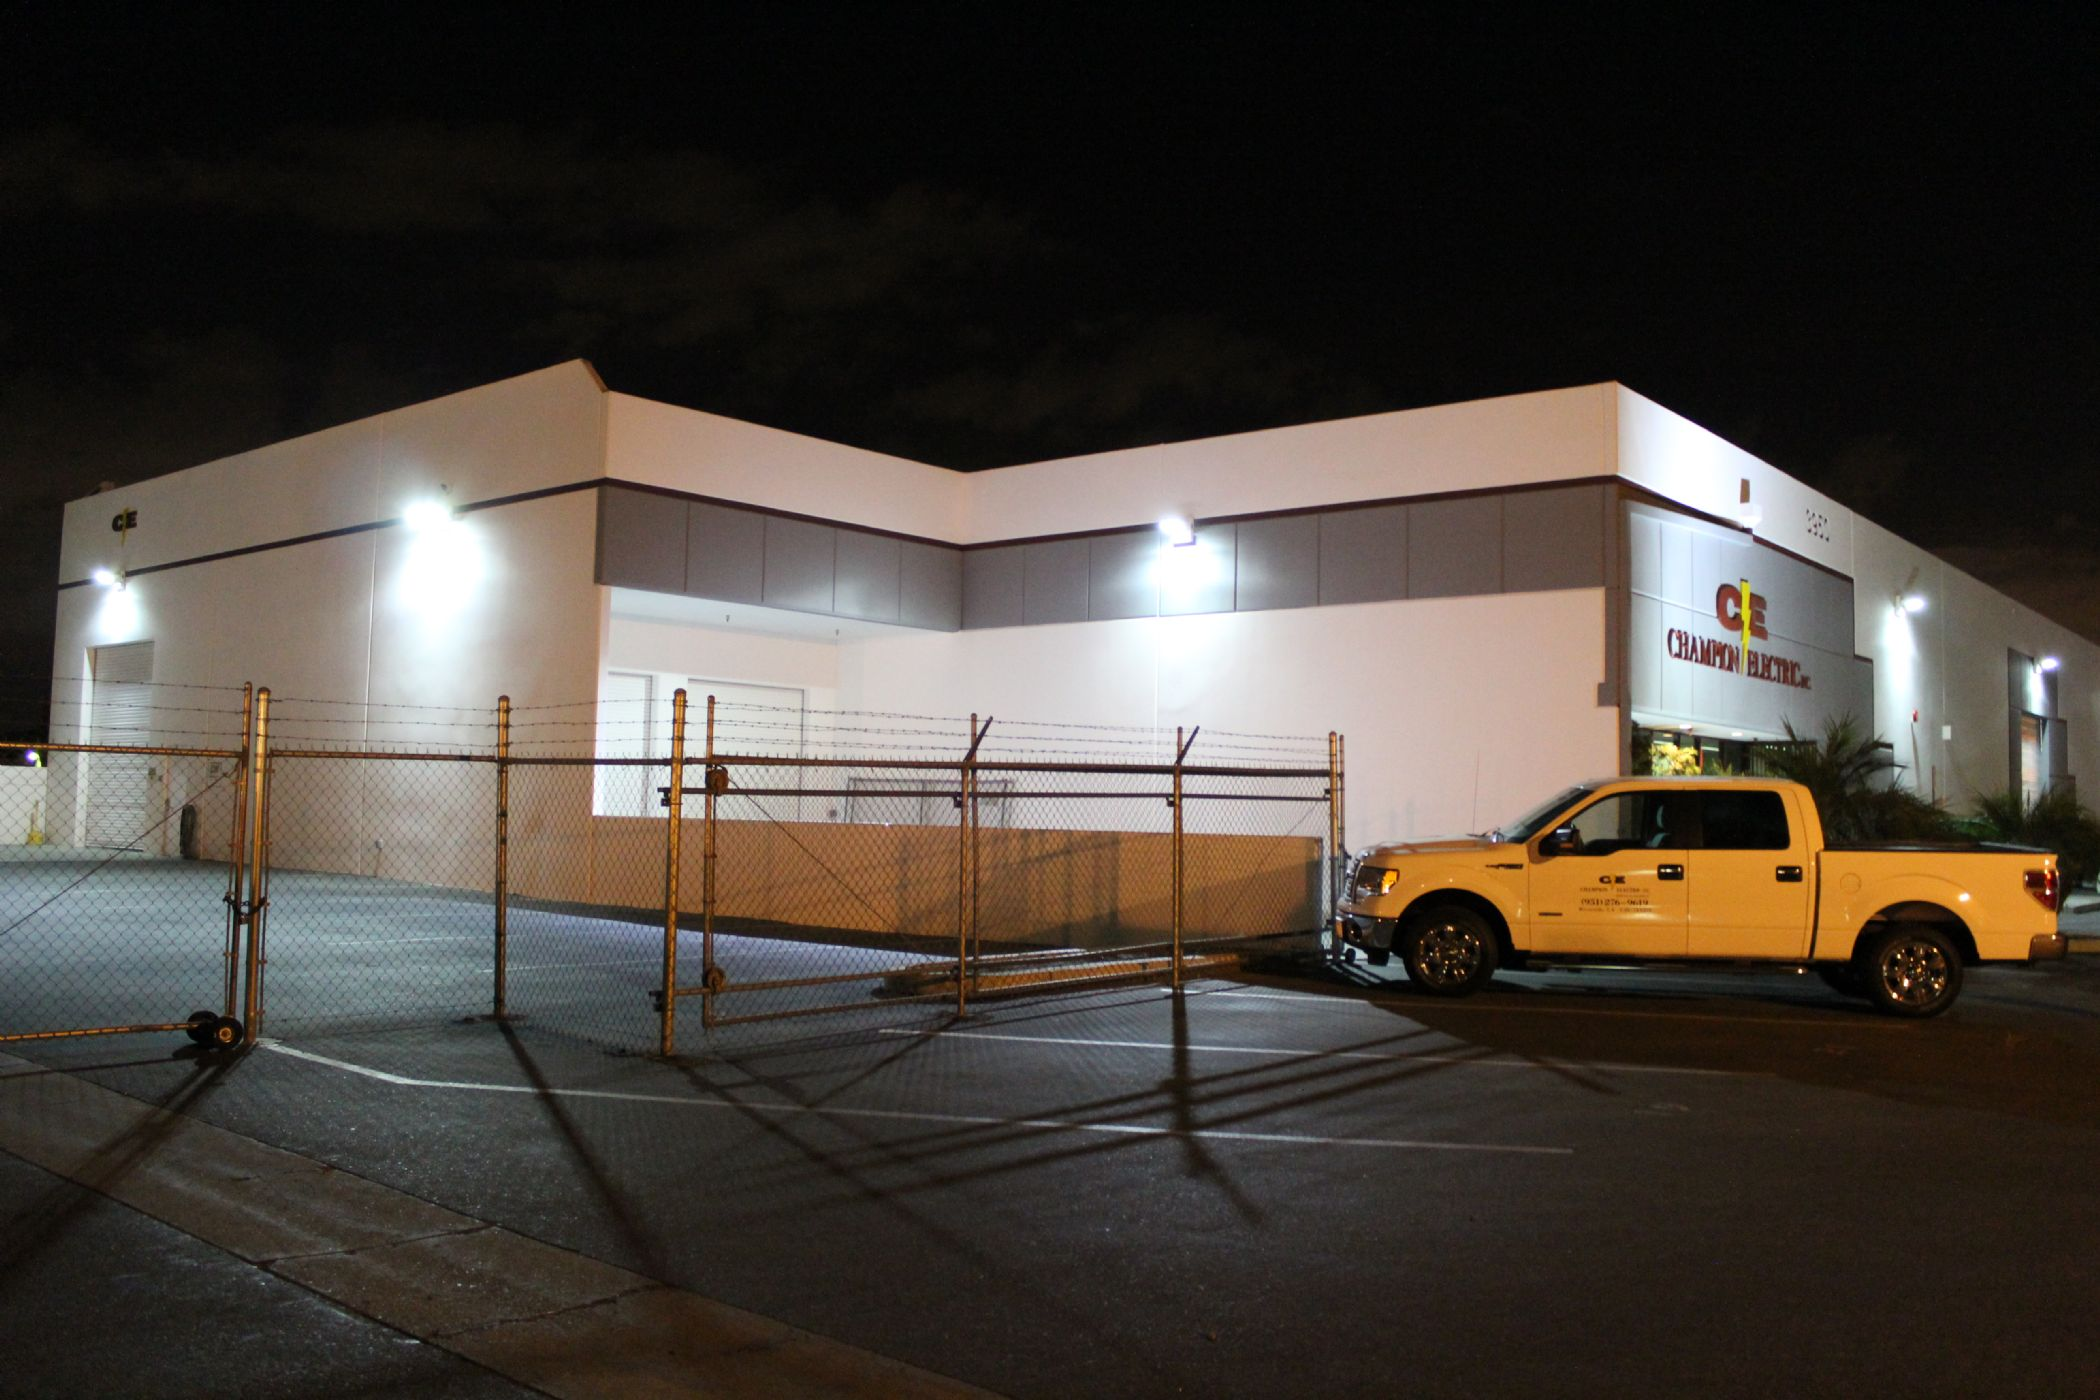 Exterior lighting 1g exterior lighting can significantly improve the look as well as the safety of your building champion electric inc can assist your business with lighting mozeypictures Images